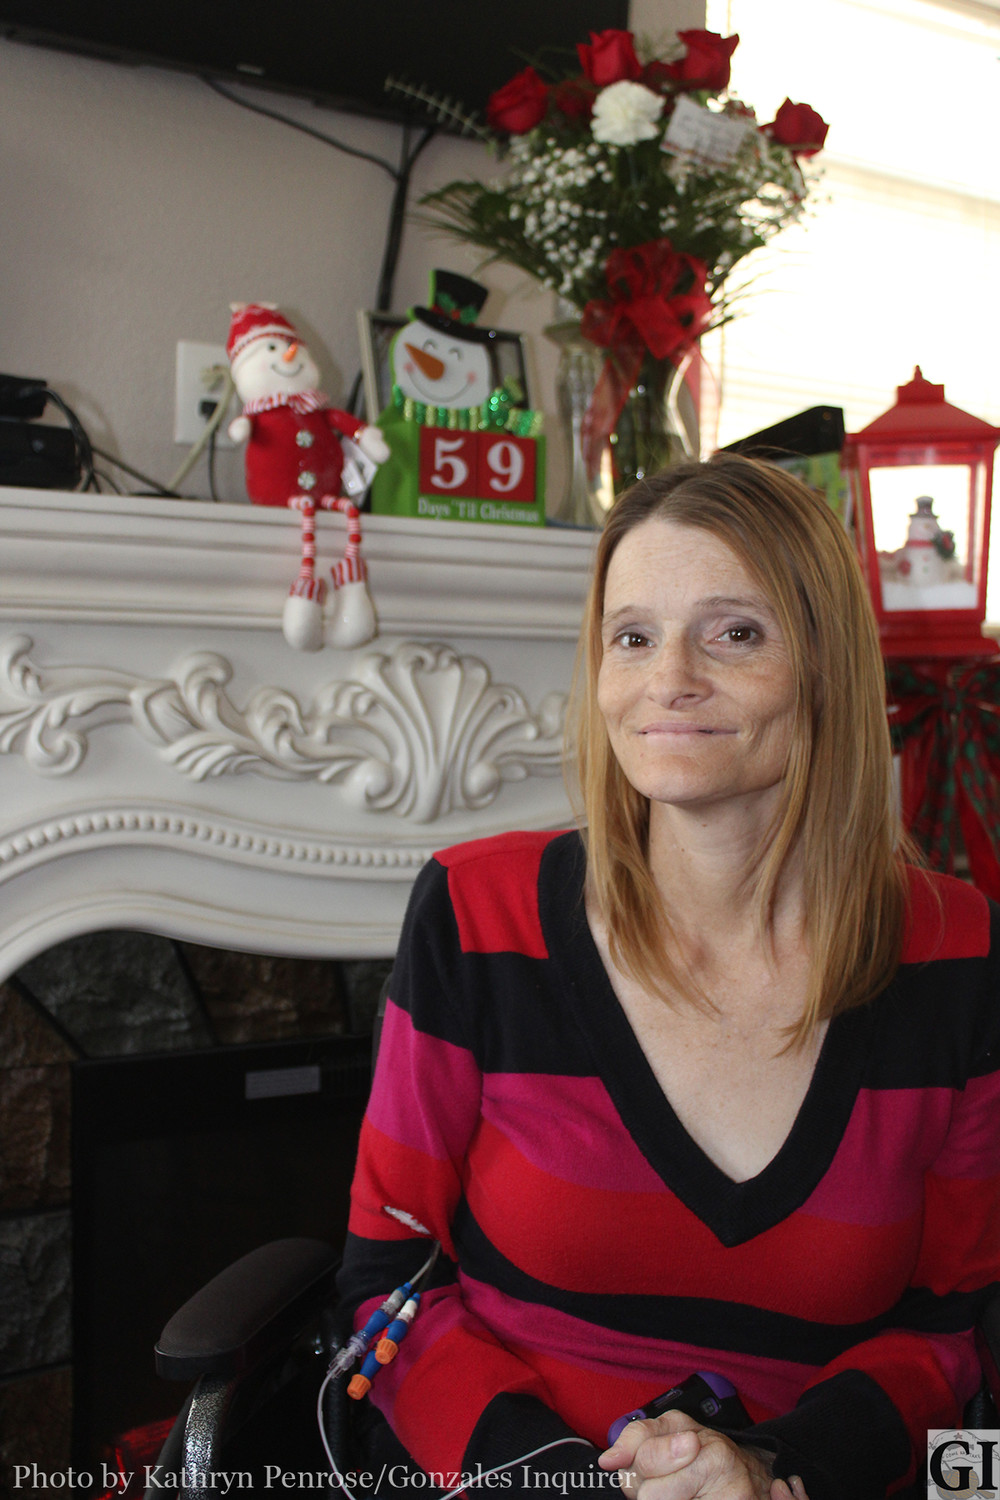 On Friday afternoon, when the cold front started moving in, Becky Cole was home by her fireplace counting down the days until Christmas. Cole's family decorated her house early this year, to stretch out the joy of this coming holiday season by declaring Christmas In October.